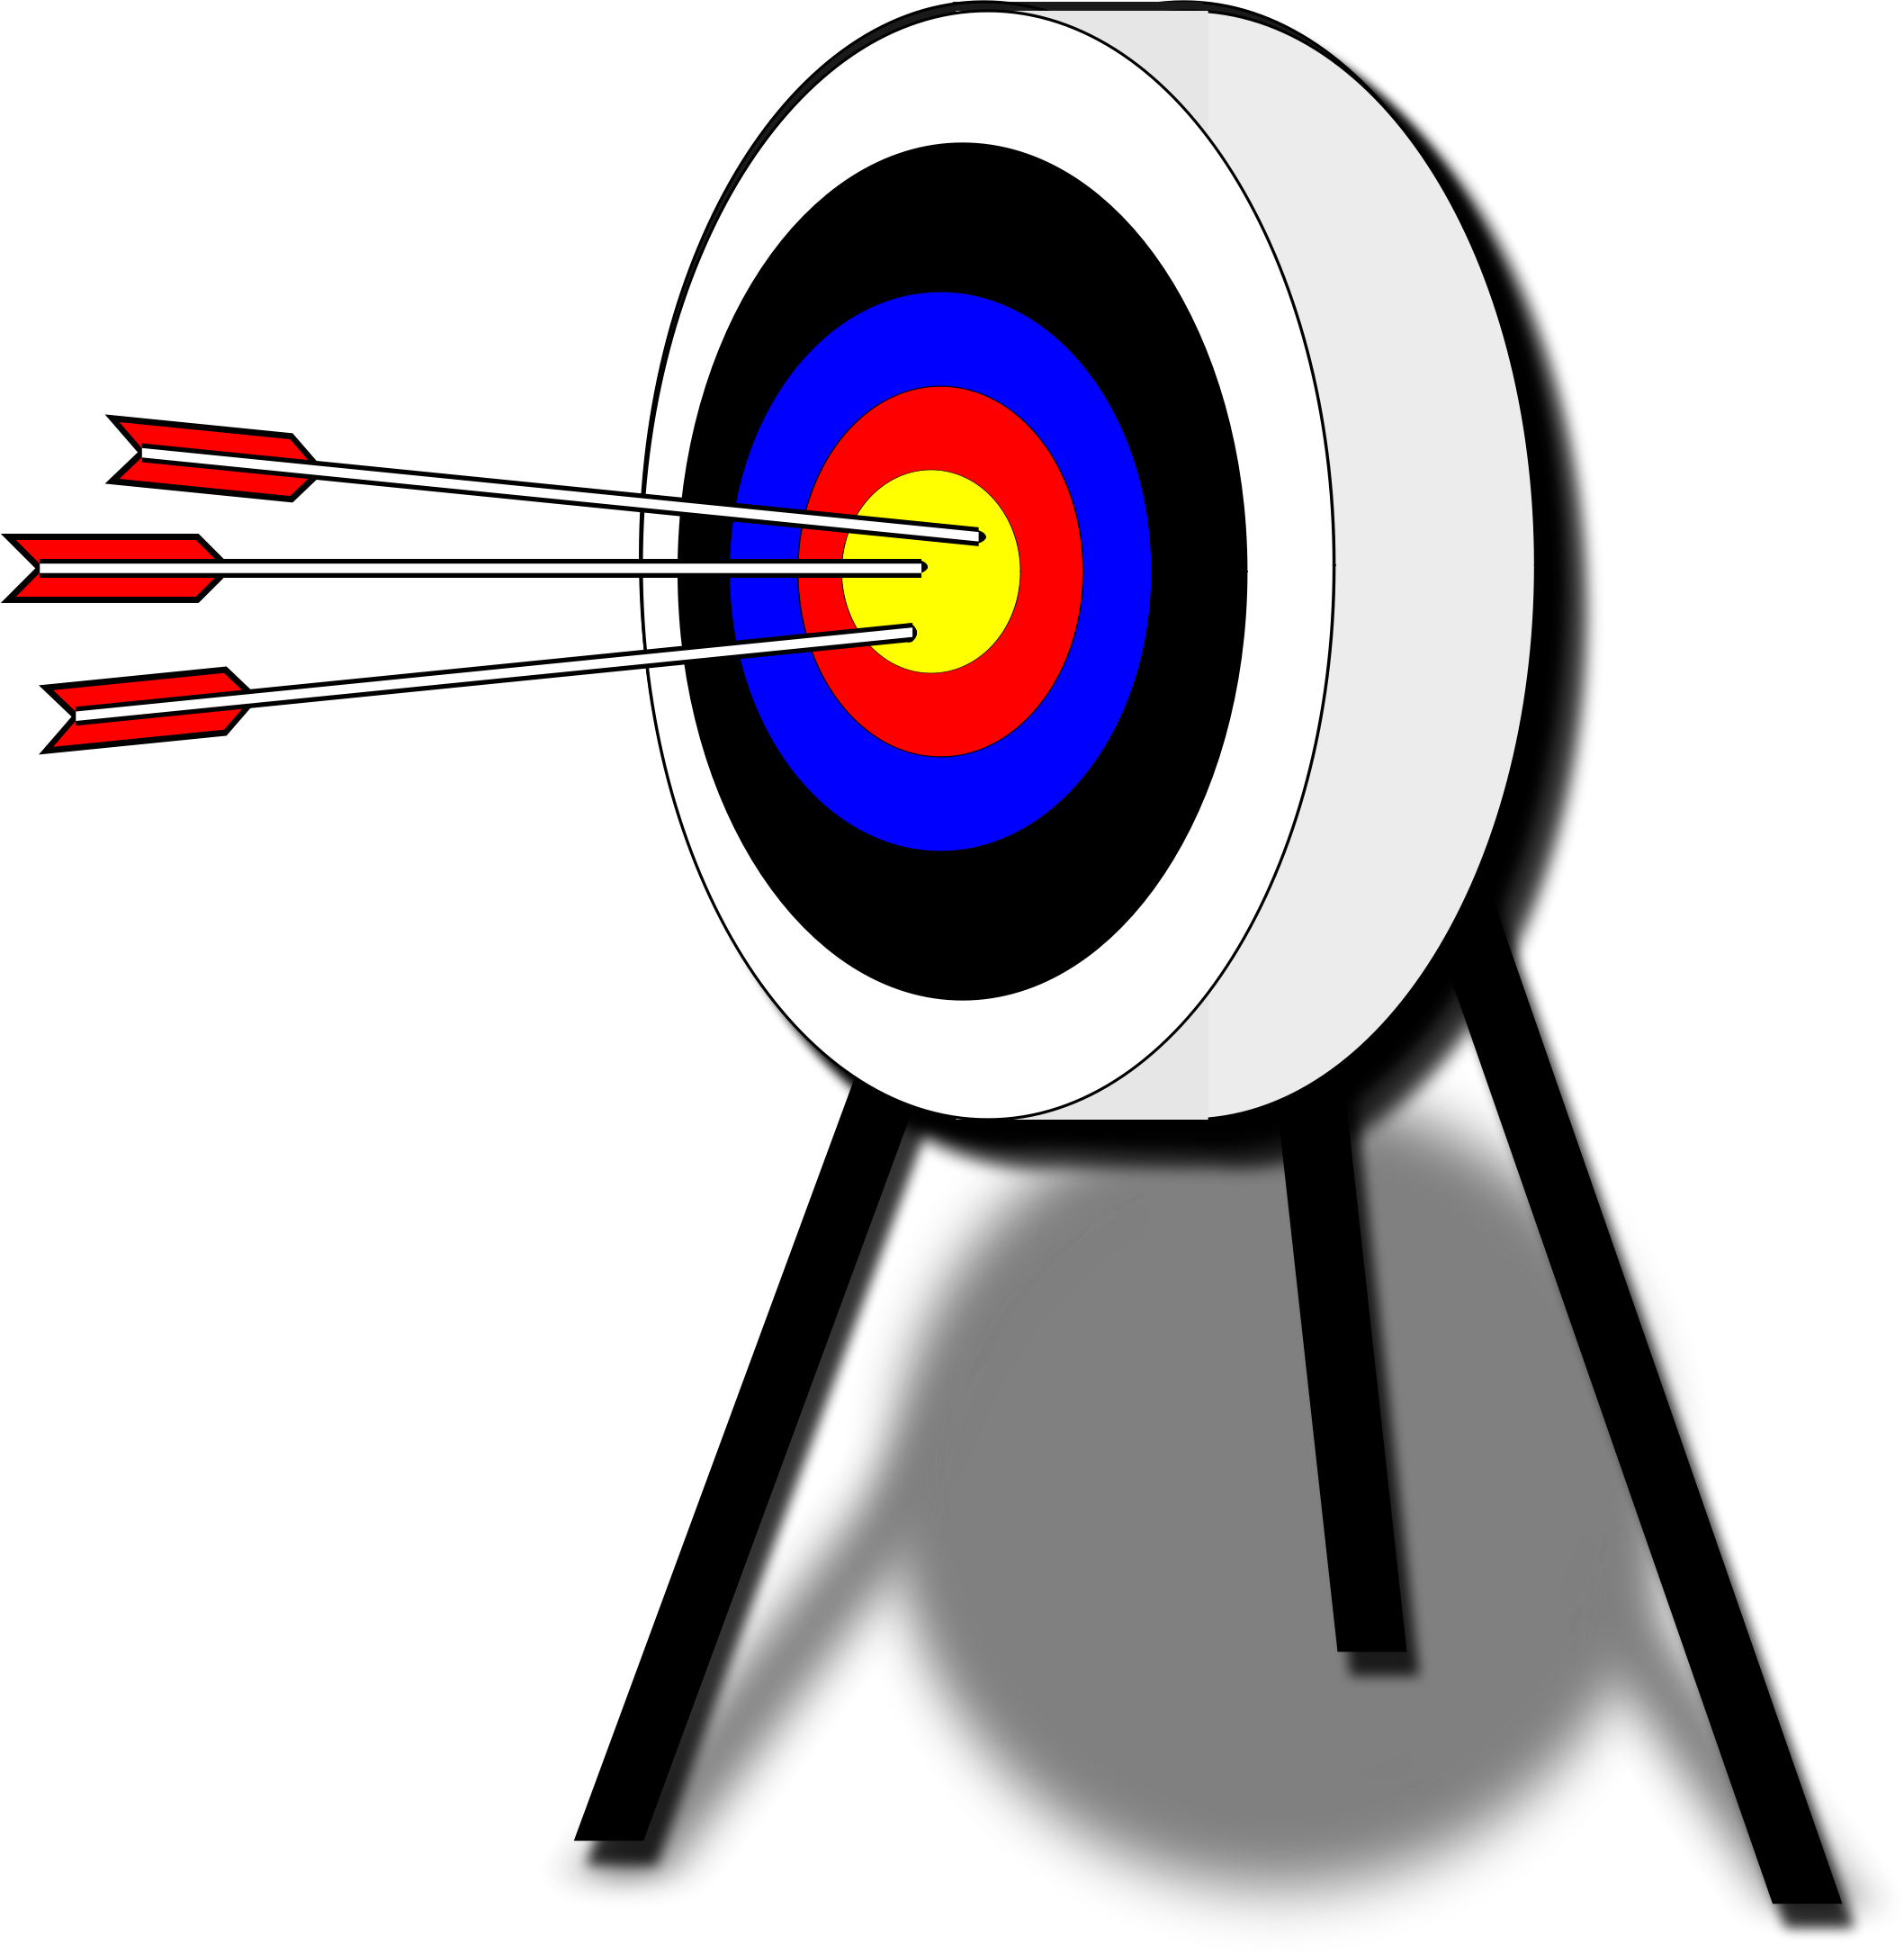 vector royalty free library Archery target big image. Bullseye clipart clip art